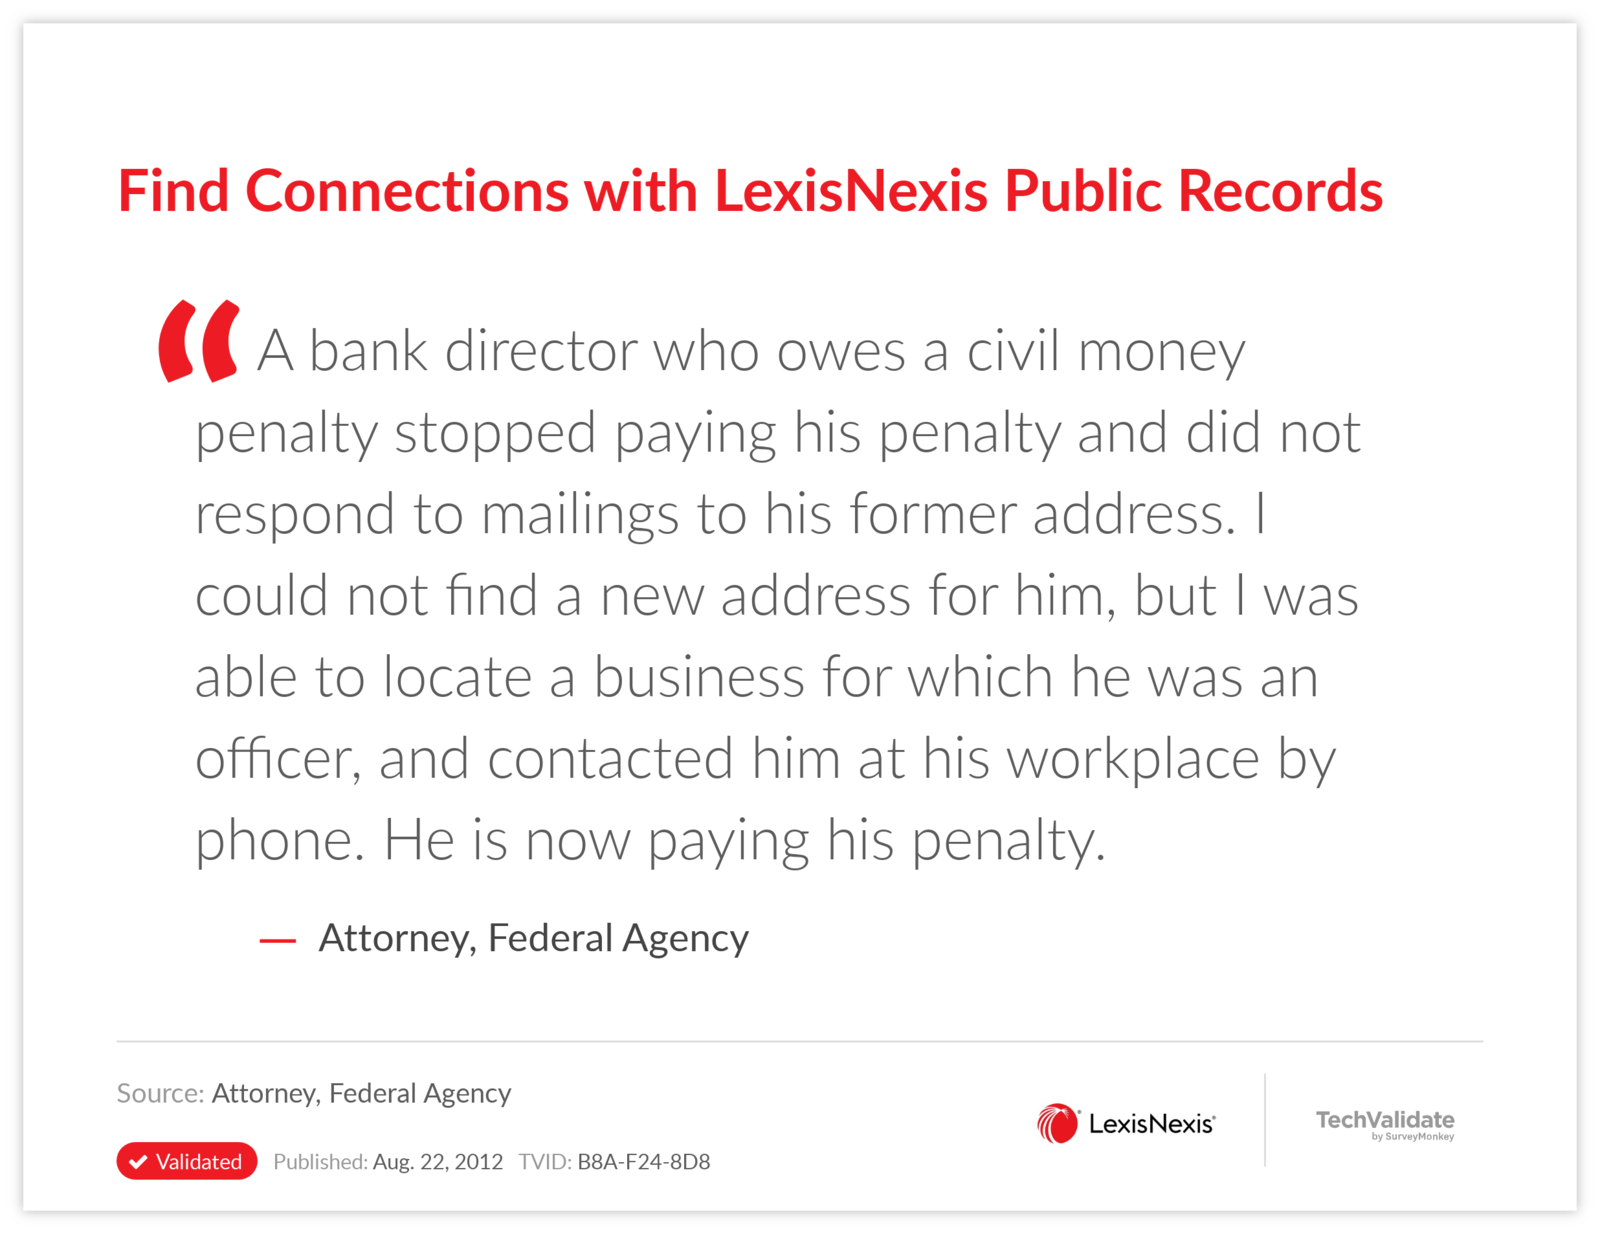 Find Connections with LexisNexis Public Records